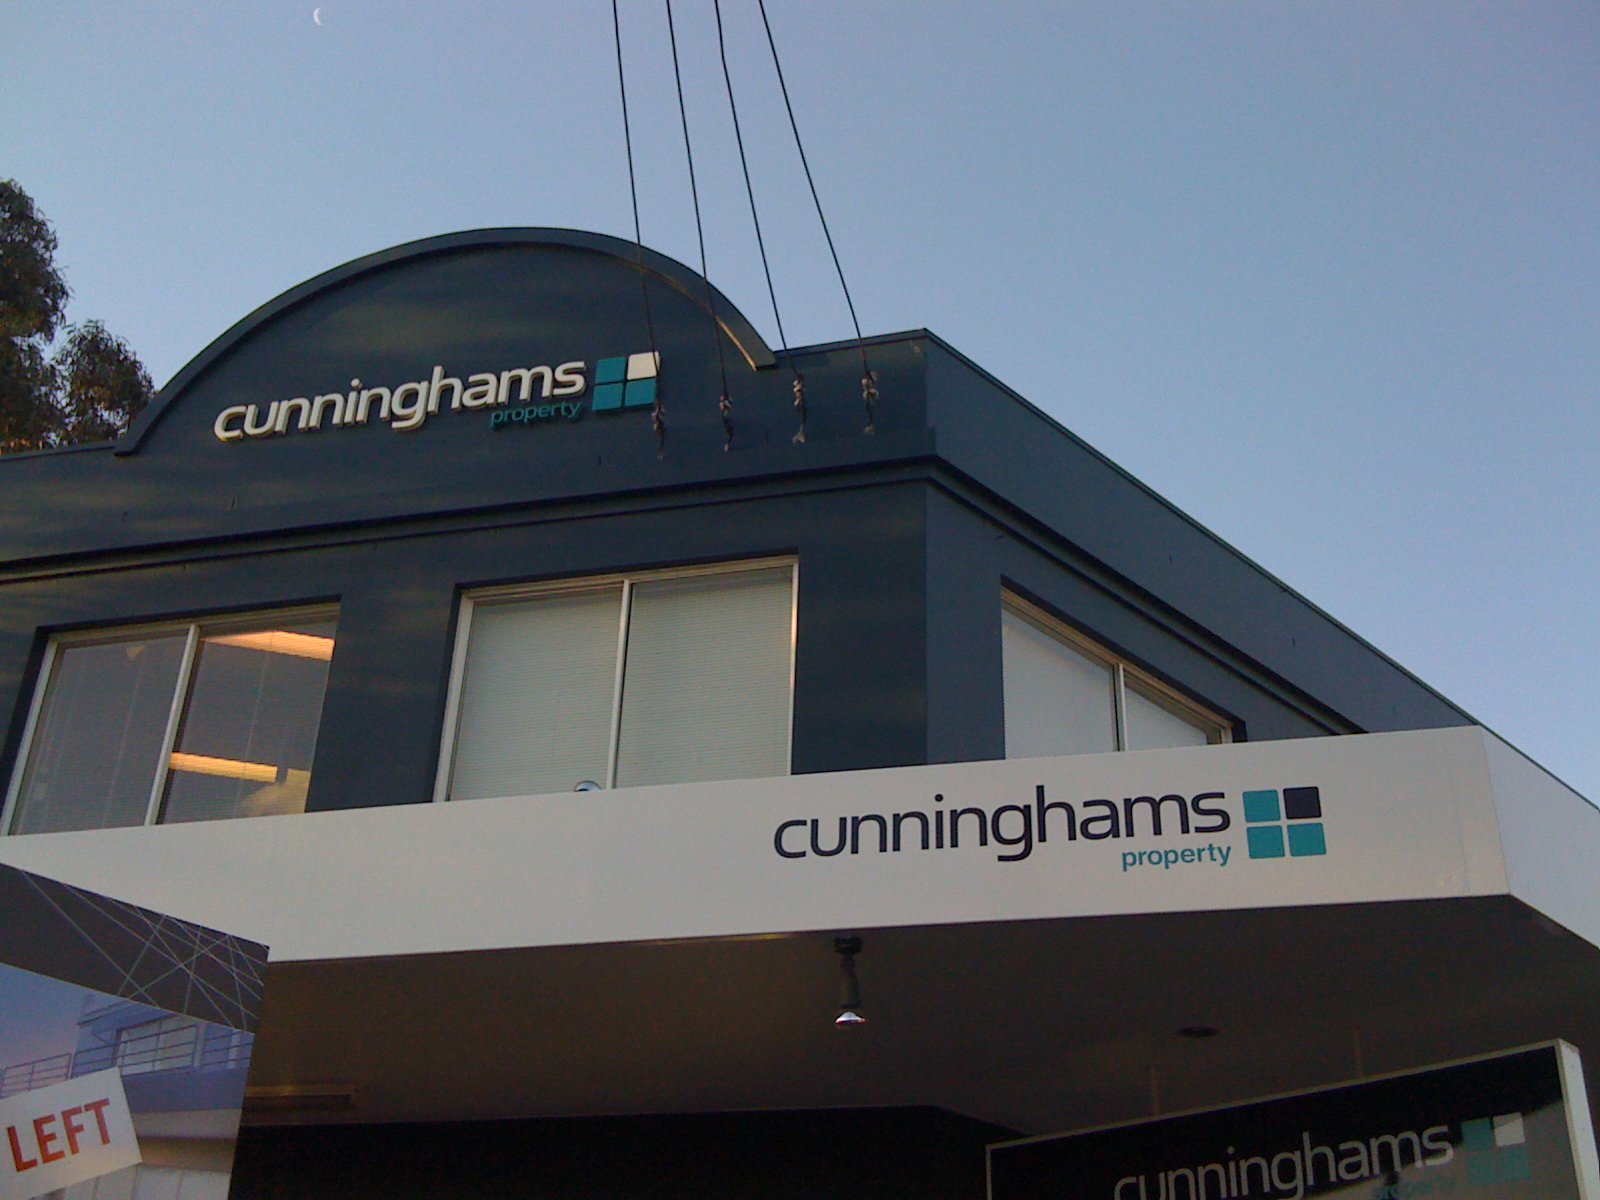 Jmac Graphics, Signage, Outdoor, Building, Awning, Lightbox, Cunninghams property